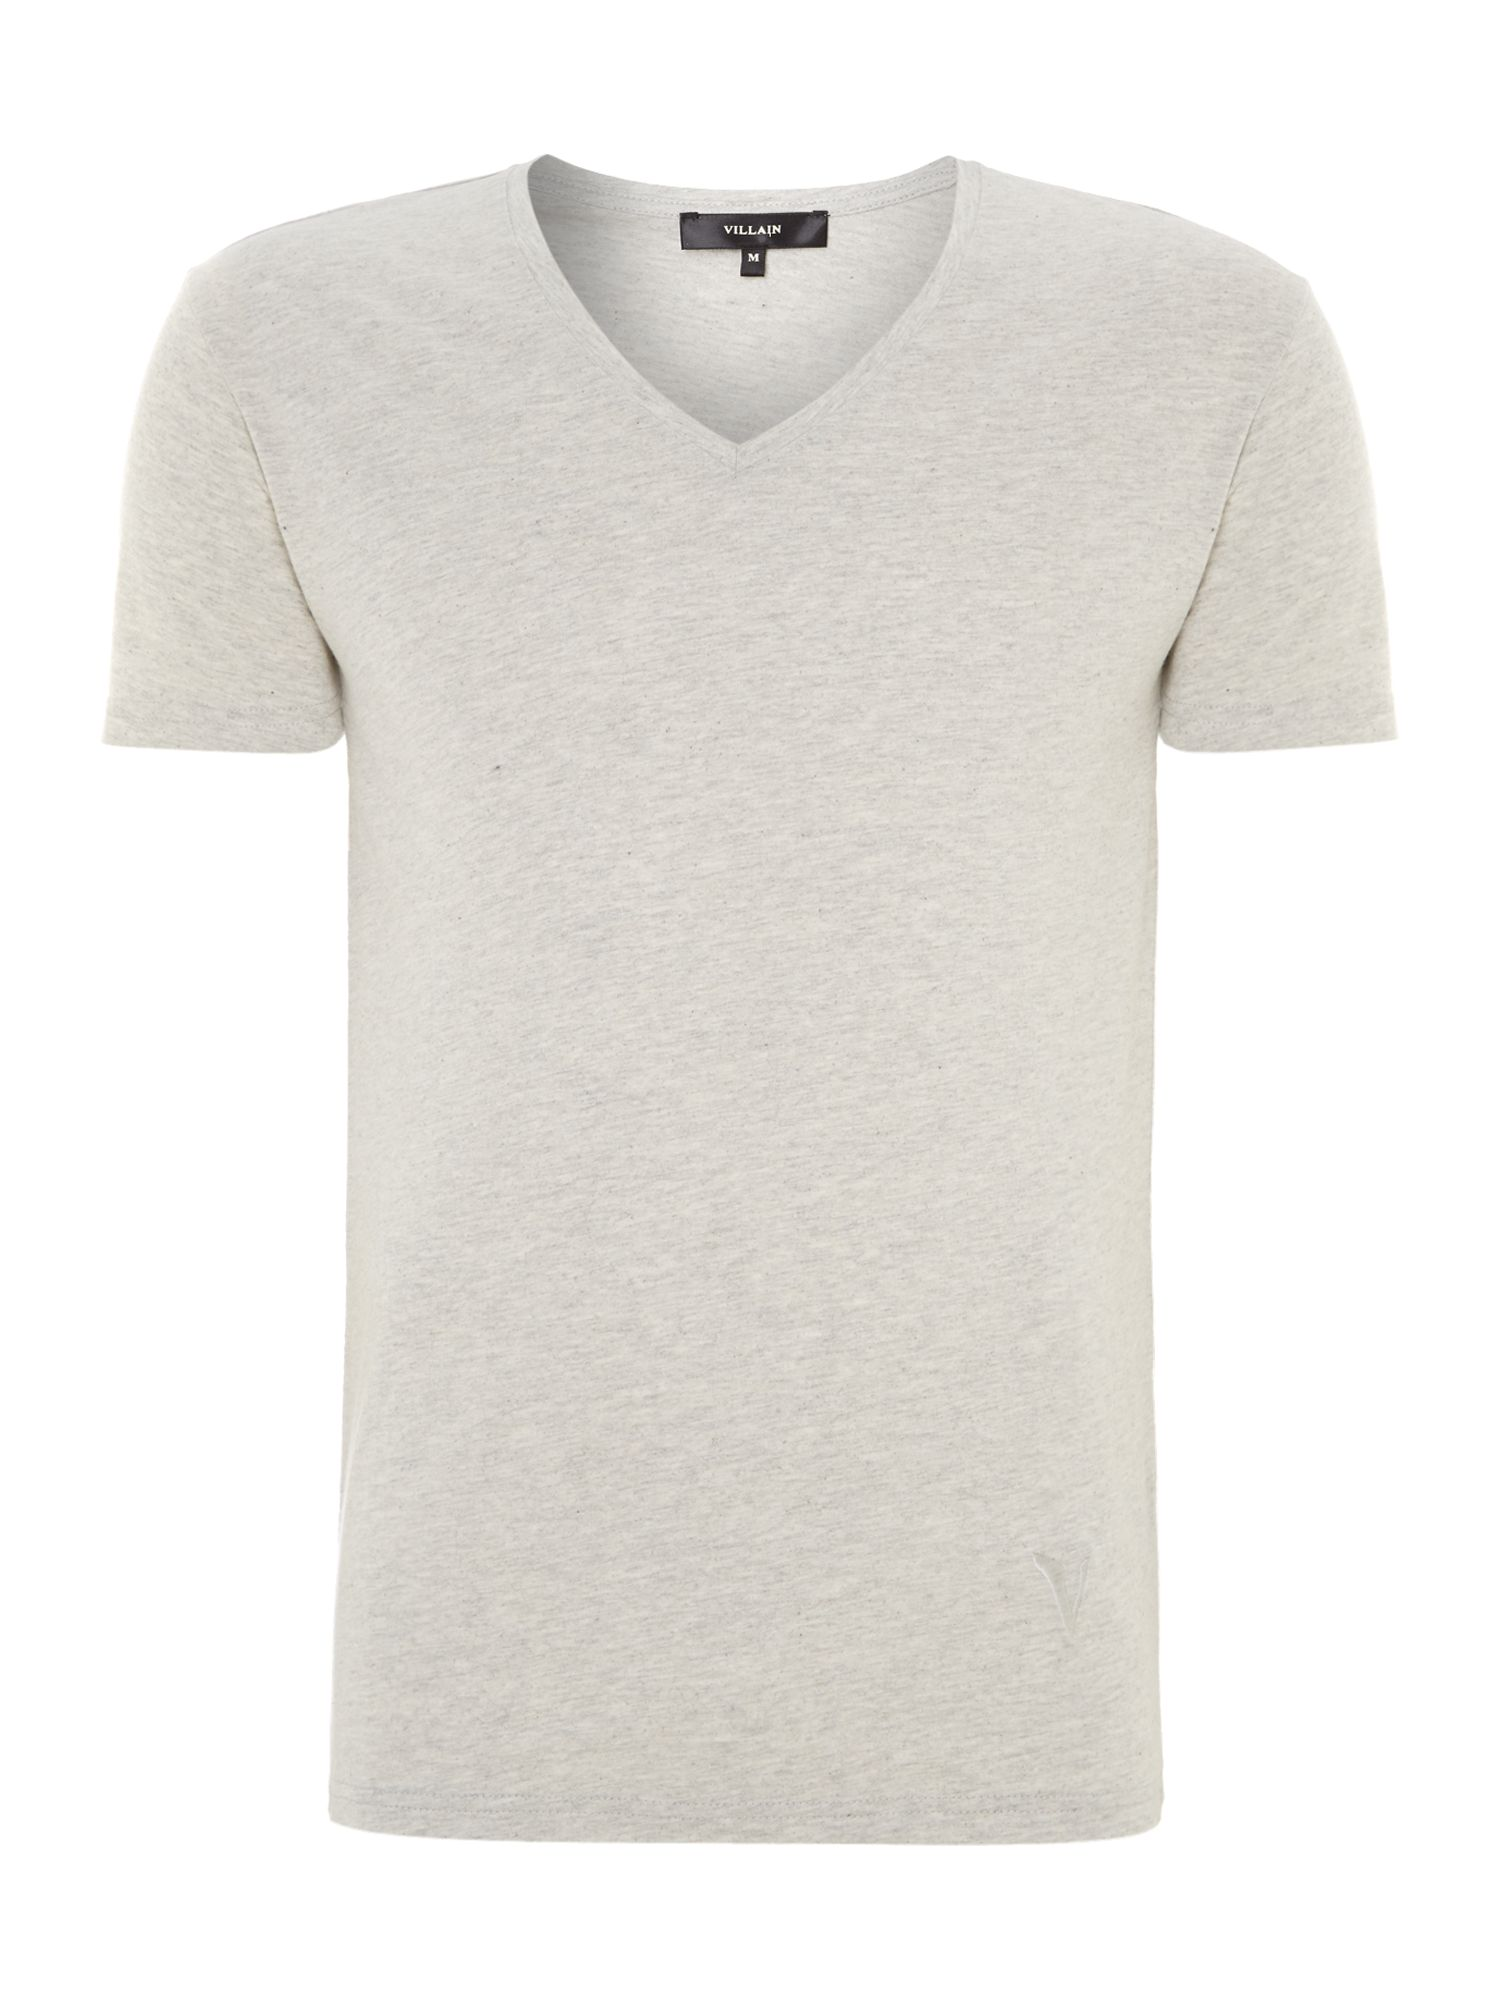 Vee neck basic t shirt